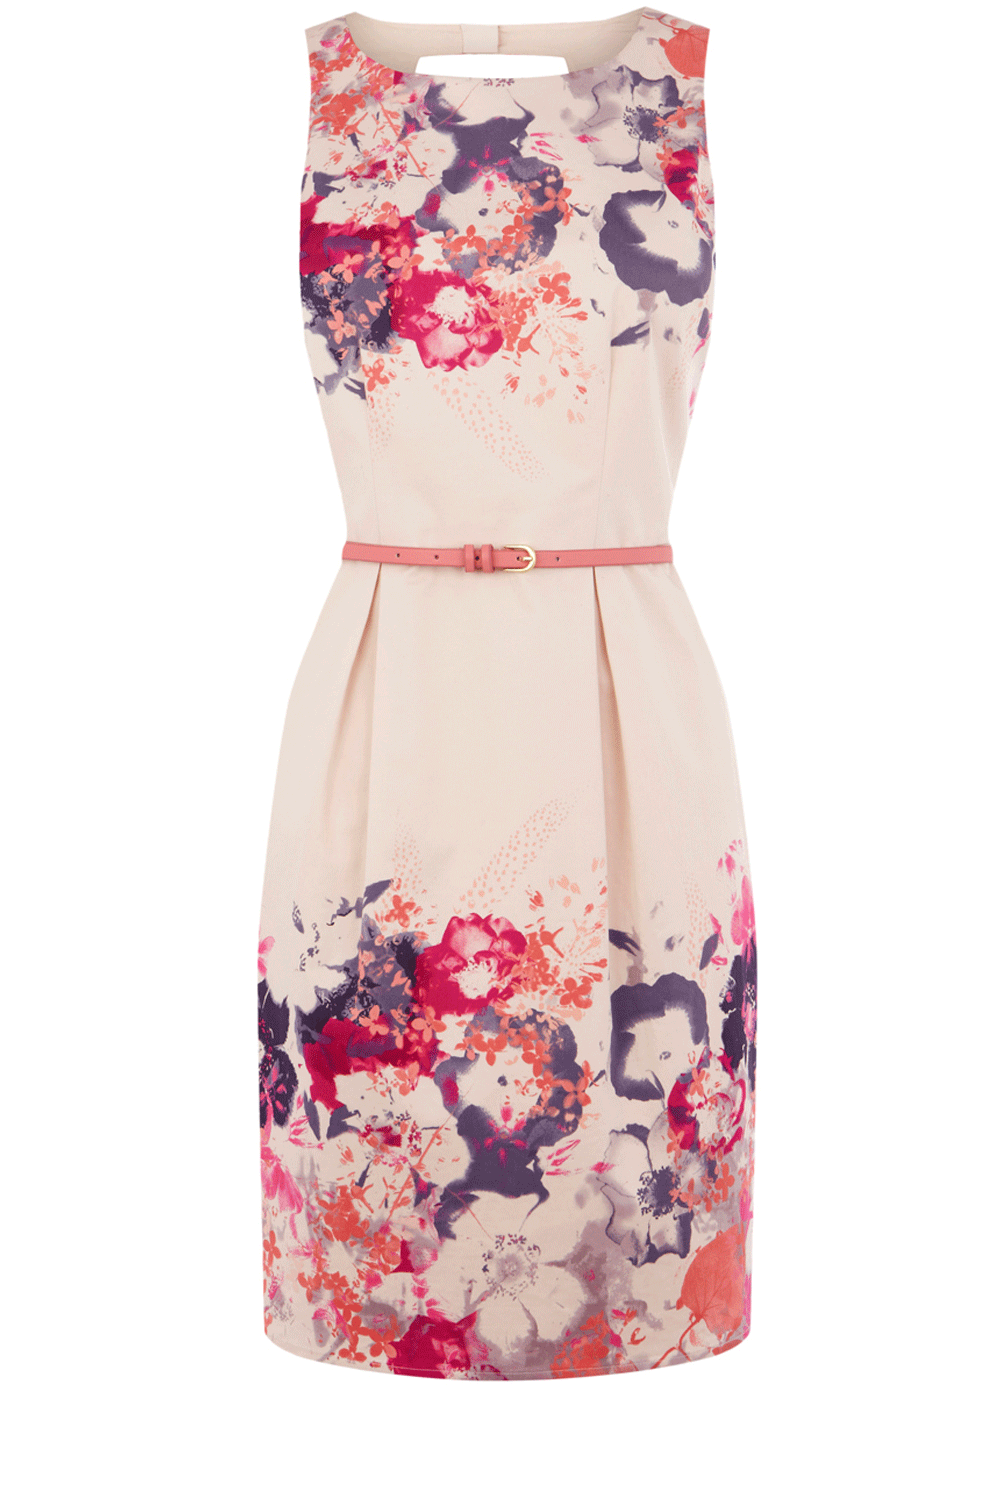 floral #dress looks like a great pick for spring | My Style ...